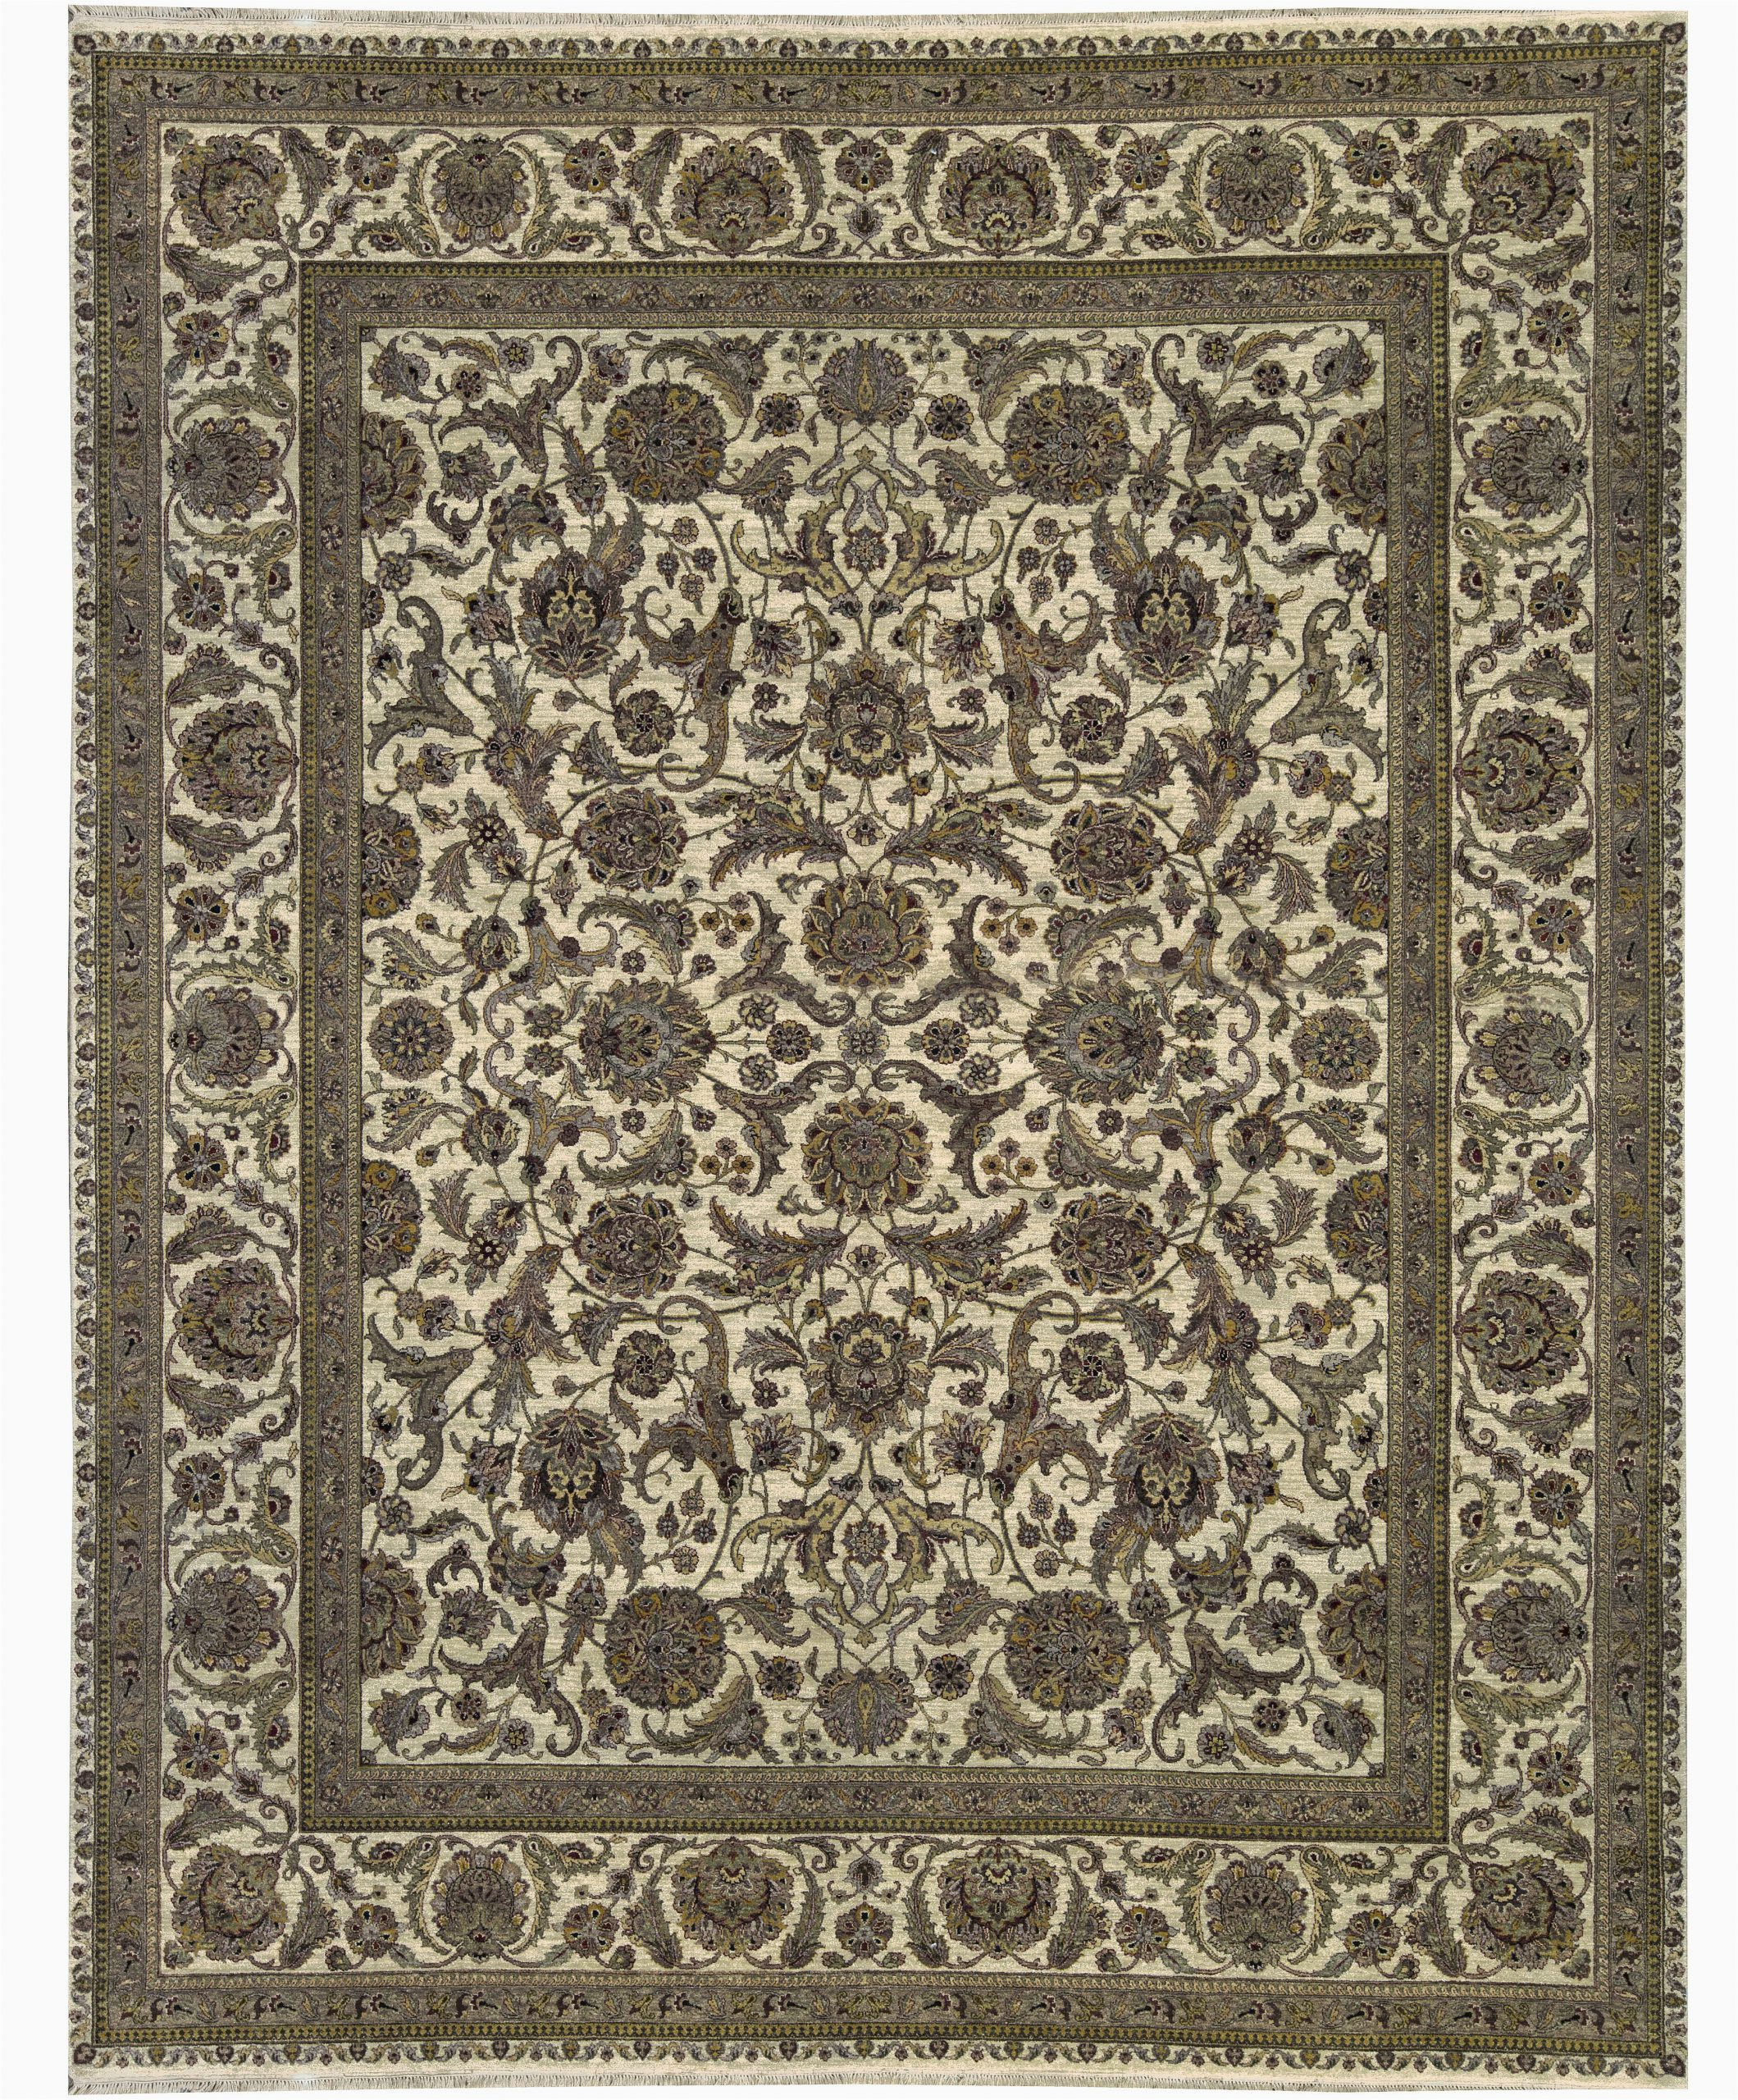 bokara rug co inc one of a kind mountain king handwoven 1111 x 149 wool brown area rug abhd2350